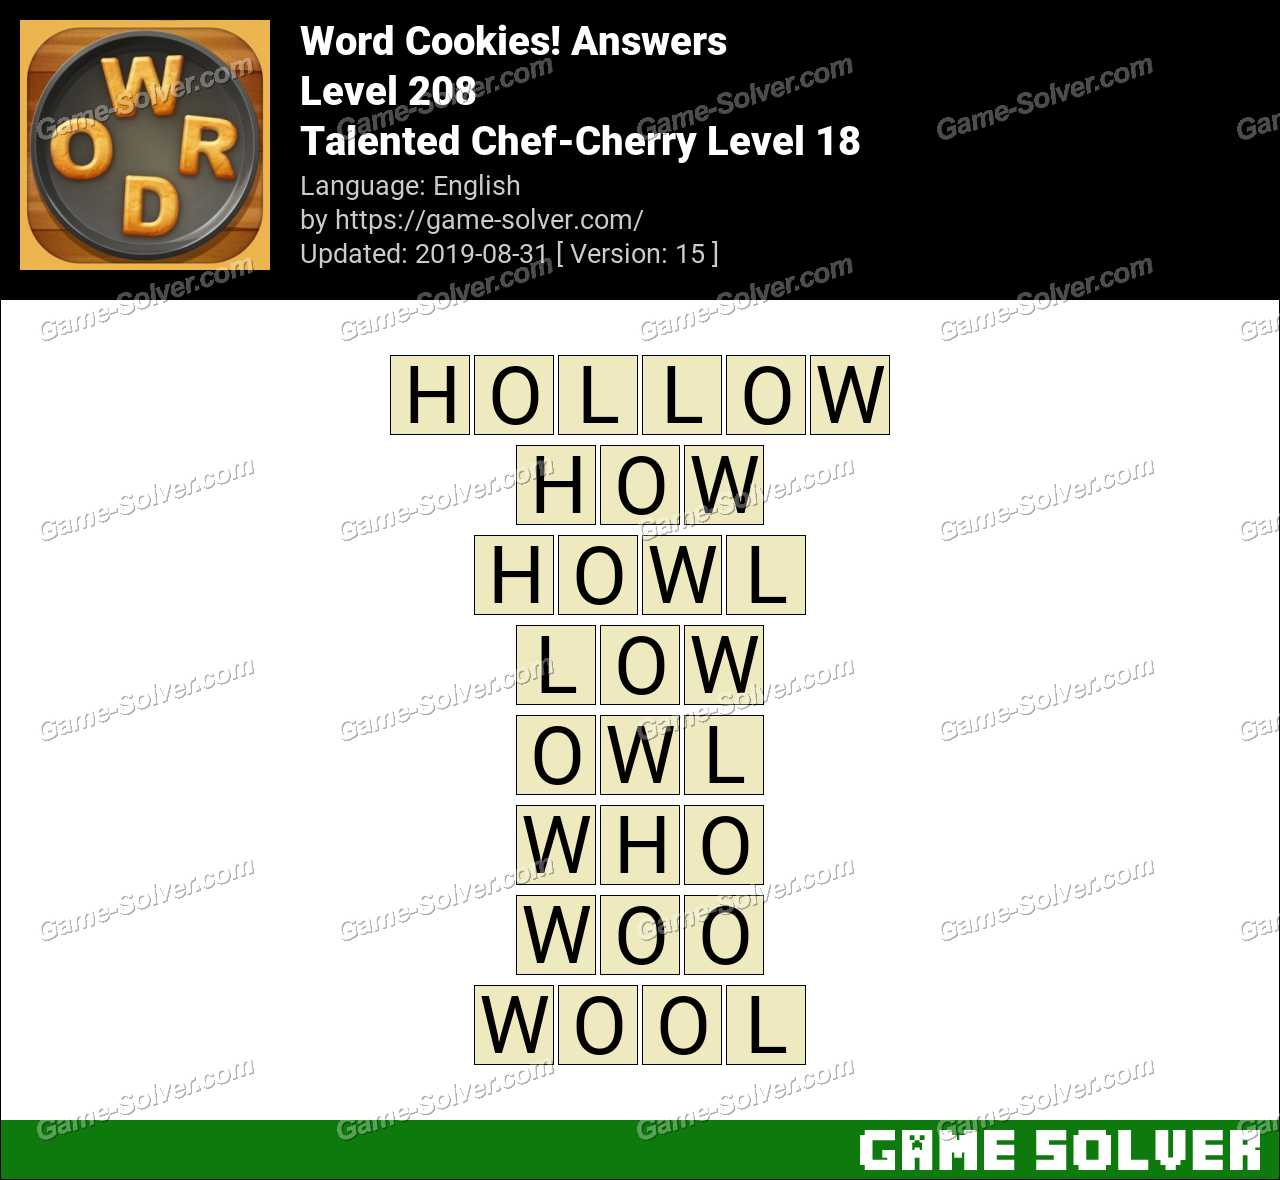 Word Cookies Talented Chef-Cherry Level 18 Answers